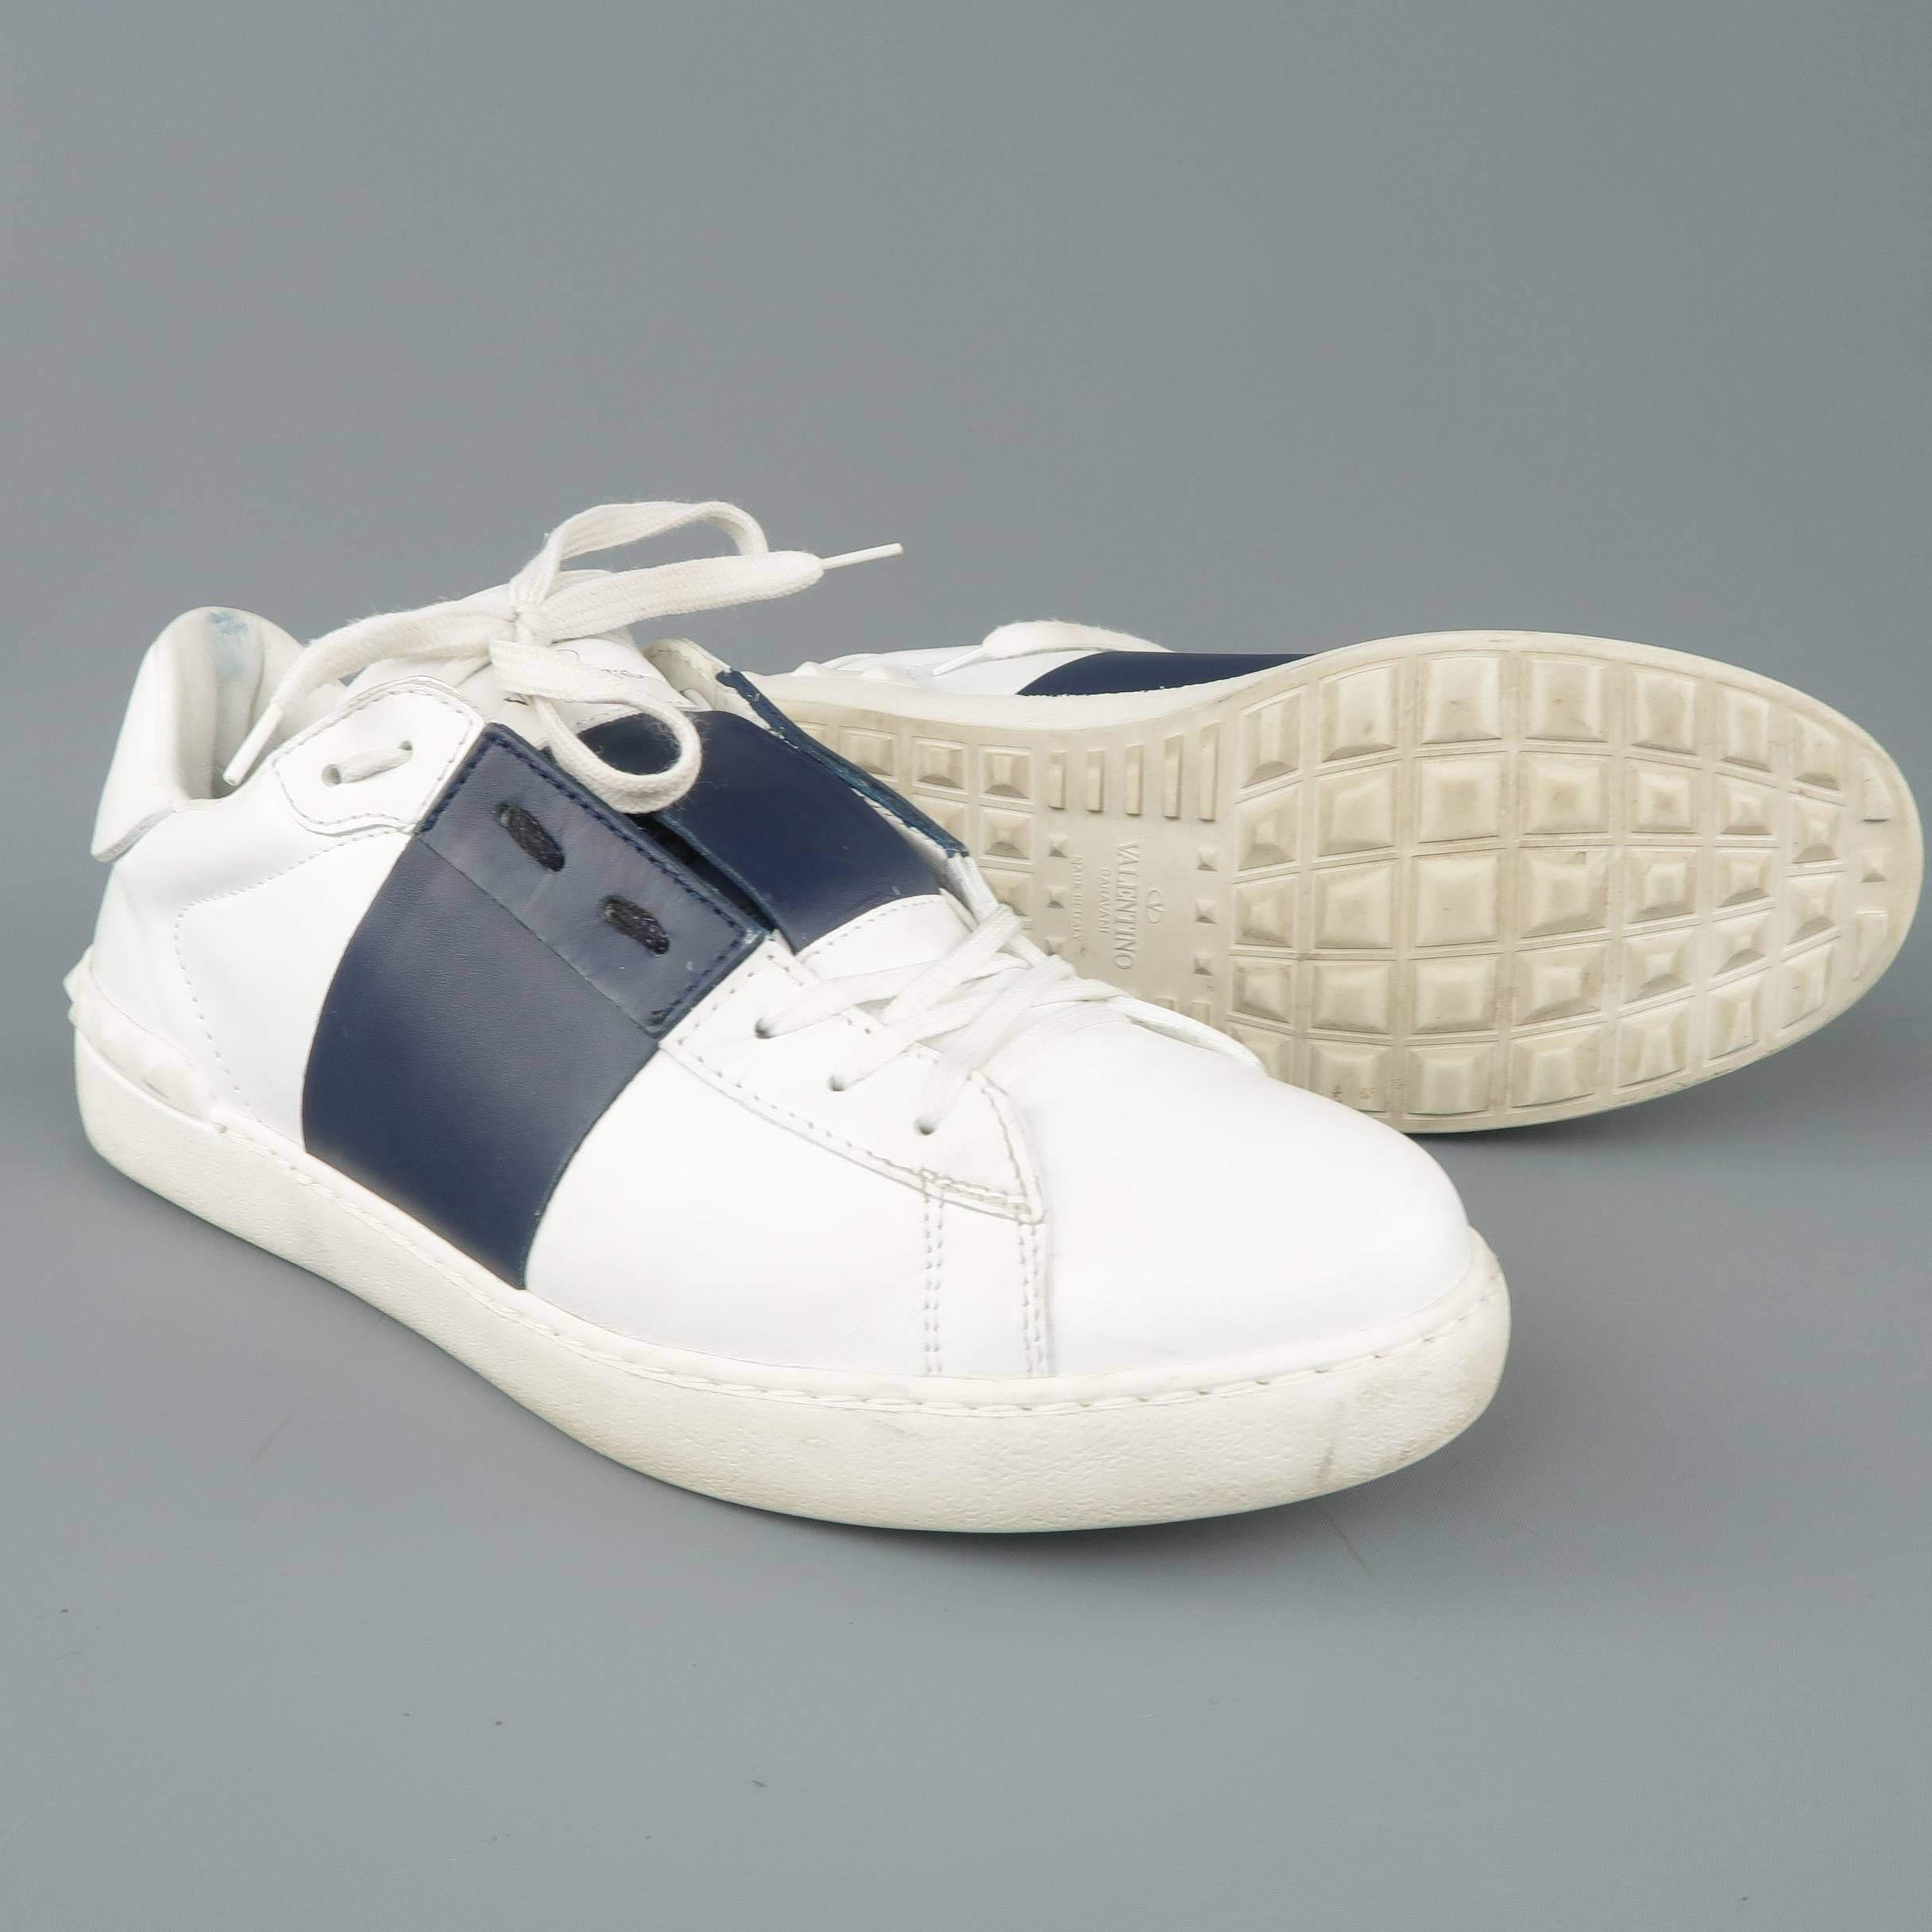 5c5f6a70c869 VALENTINO Size 12 White and Navy Color Block Leather Open Sneakers For Sale  at 1stdibs